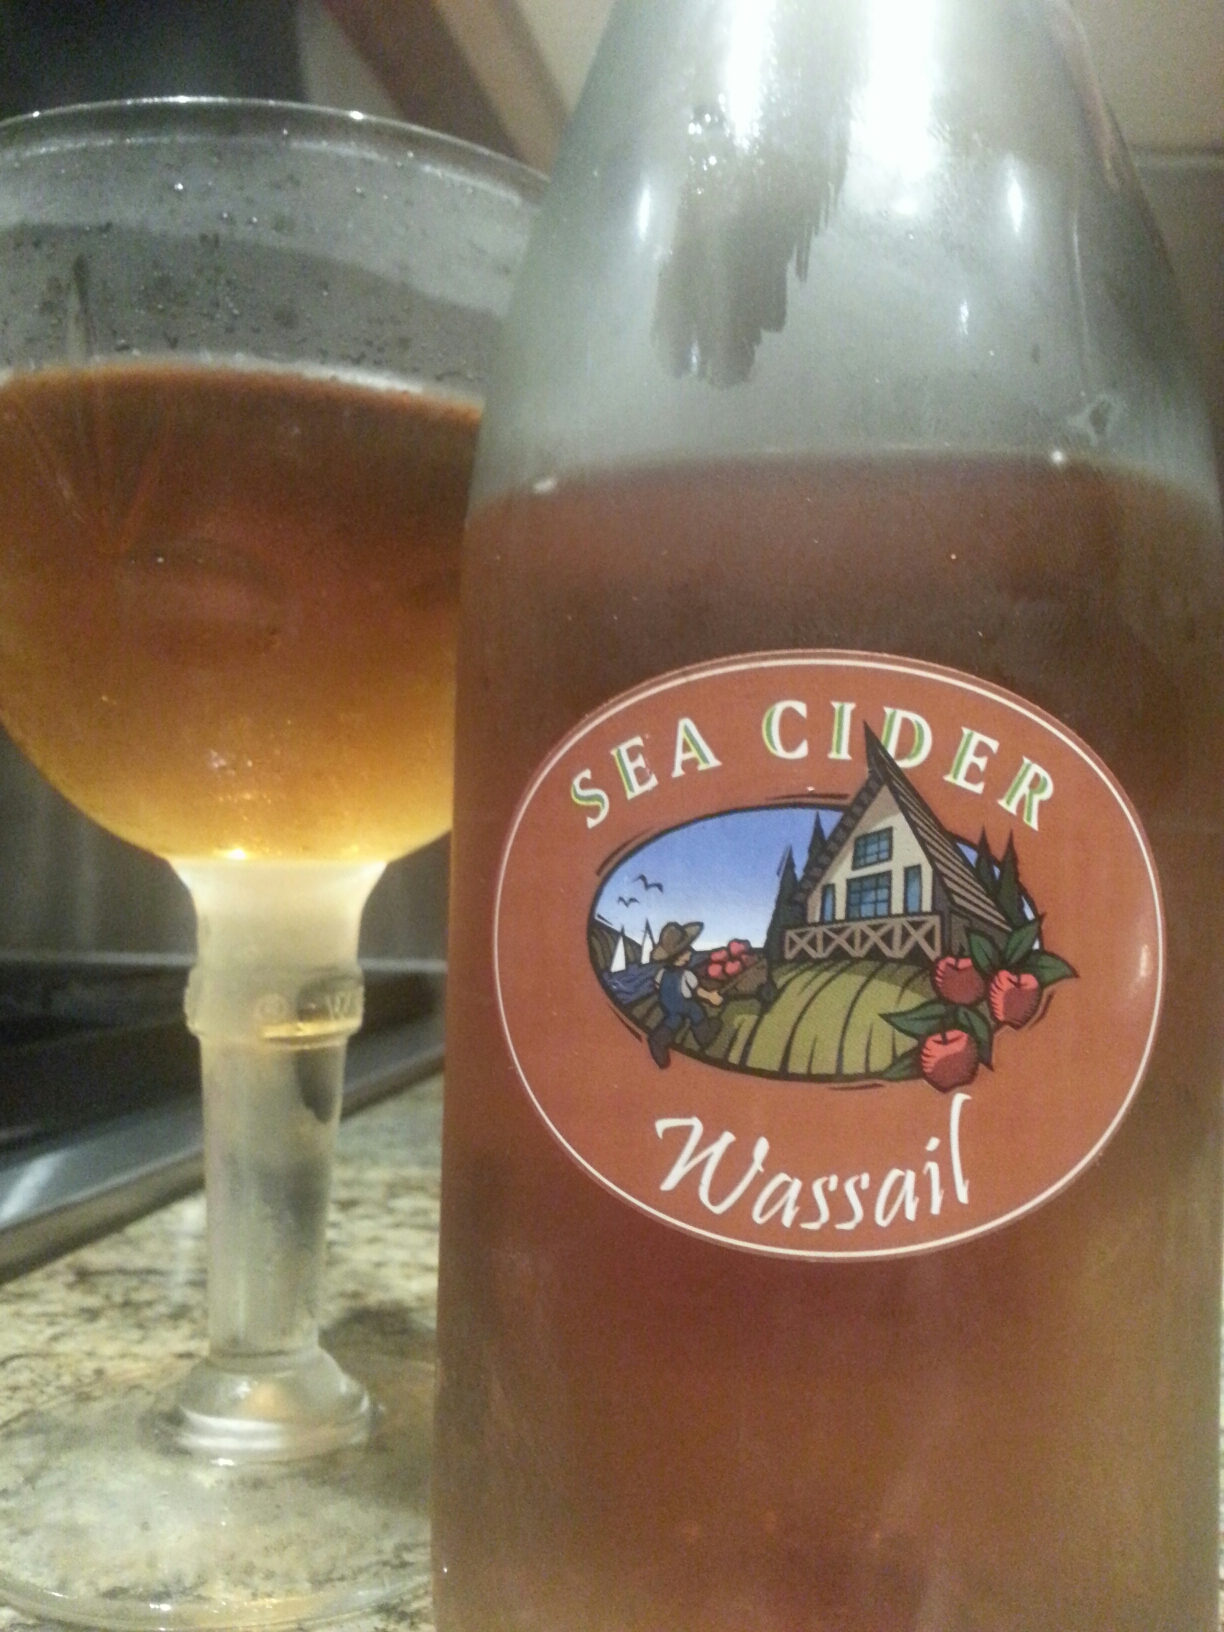 Wassail – Sea Cider (Saanichton, BC, Canada) | Justintoxicated.